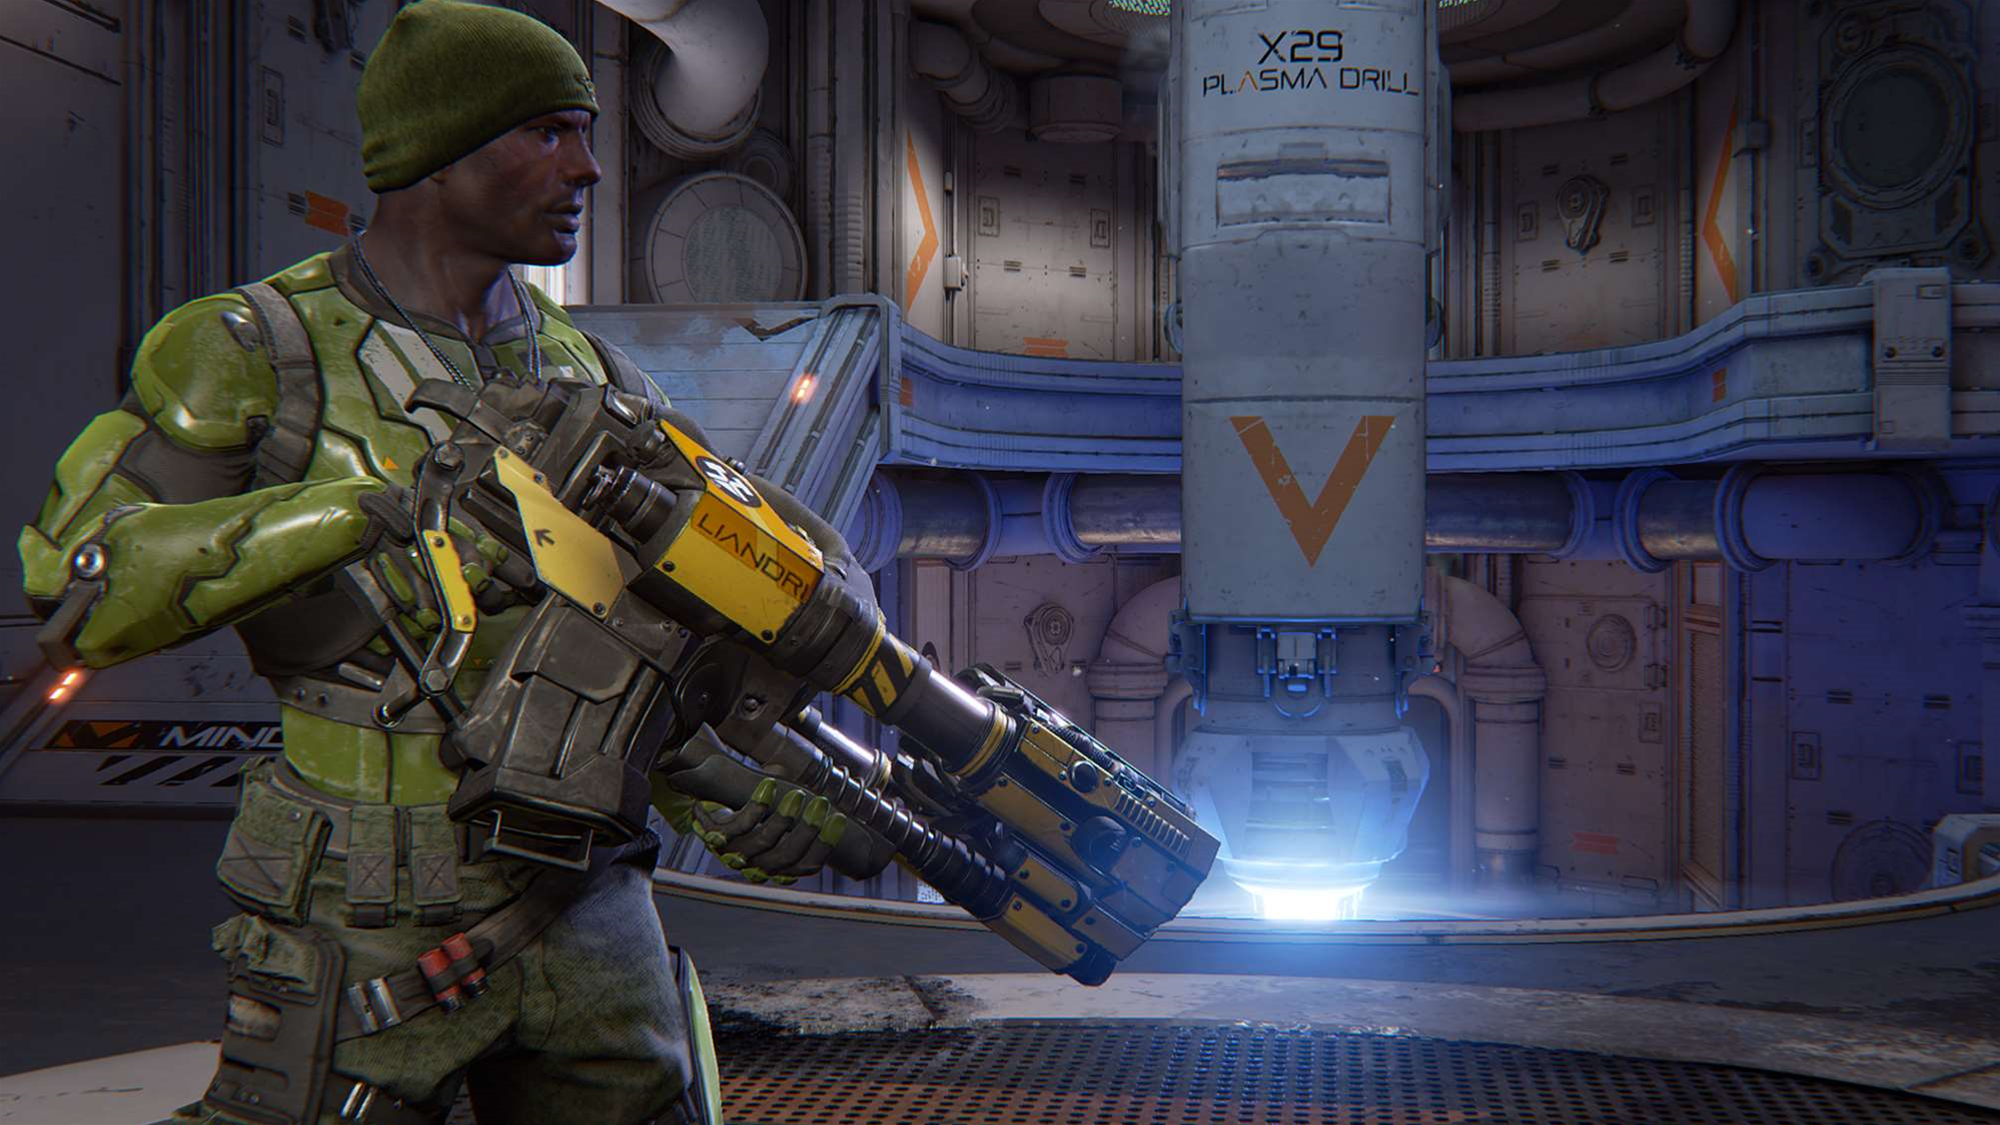 Yes, you can play the new Unreal Tournament now